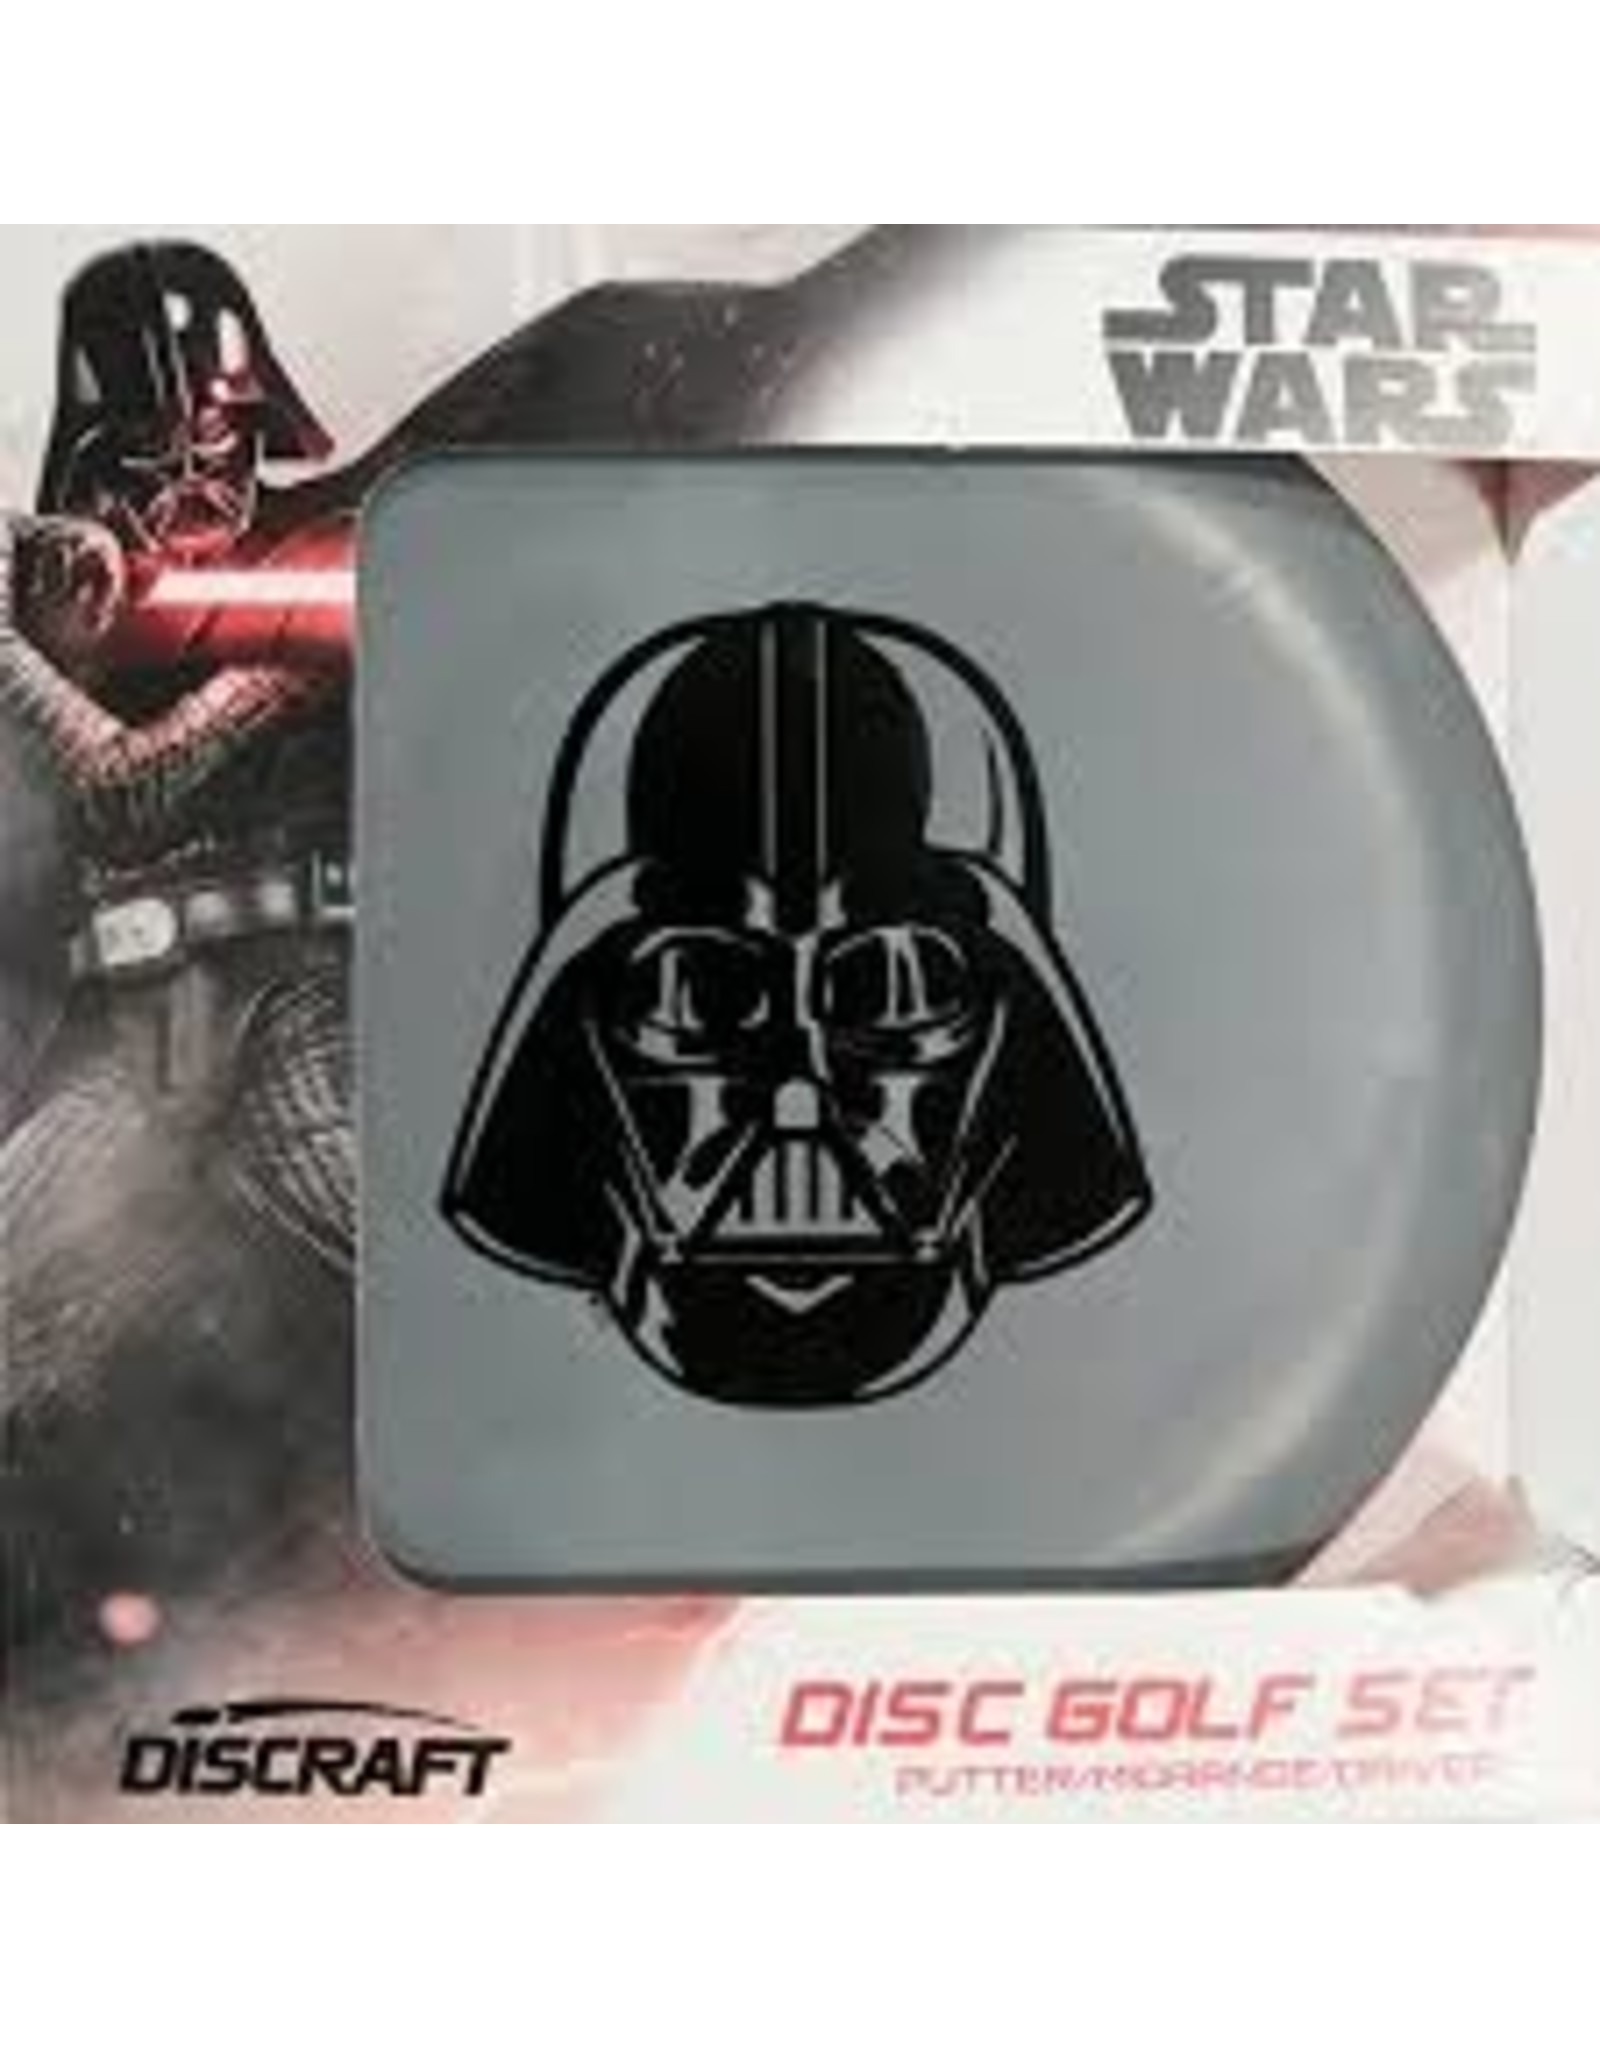 Discraft Star Wars Disc Golf Set